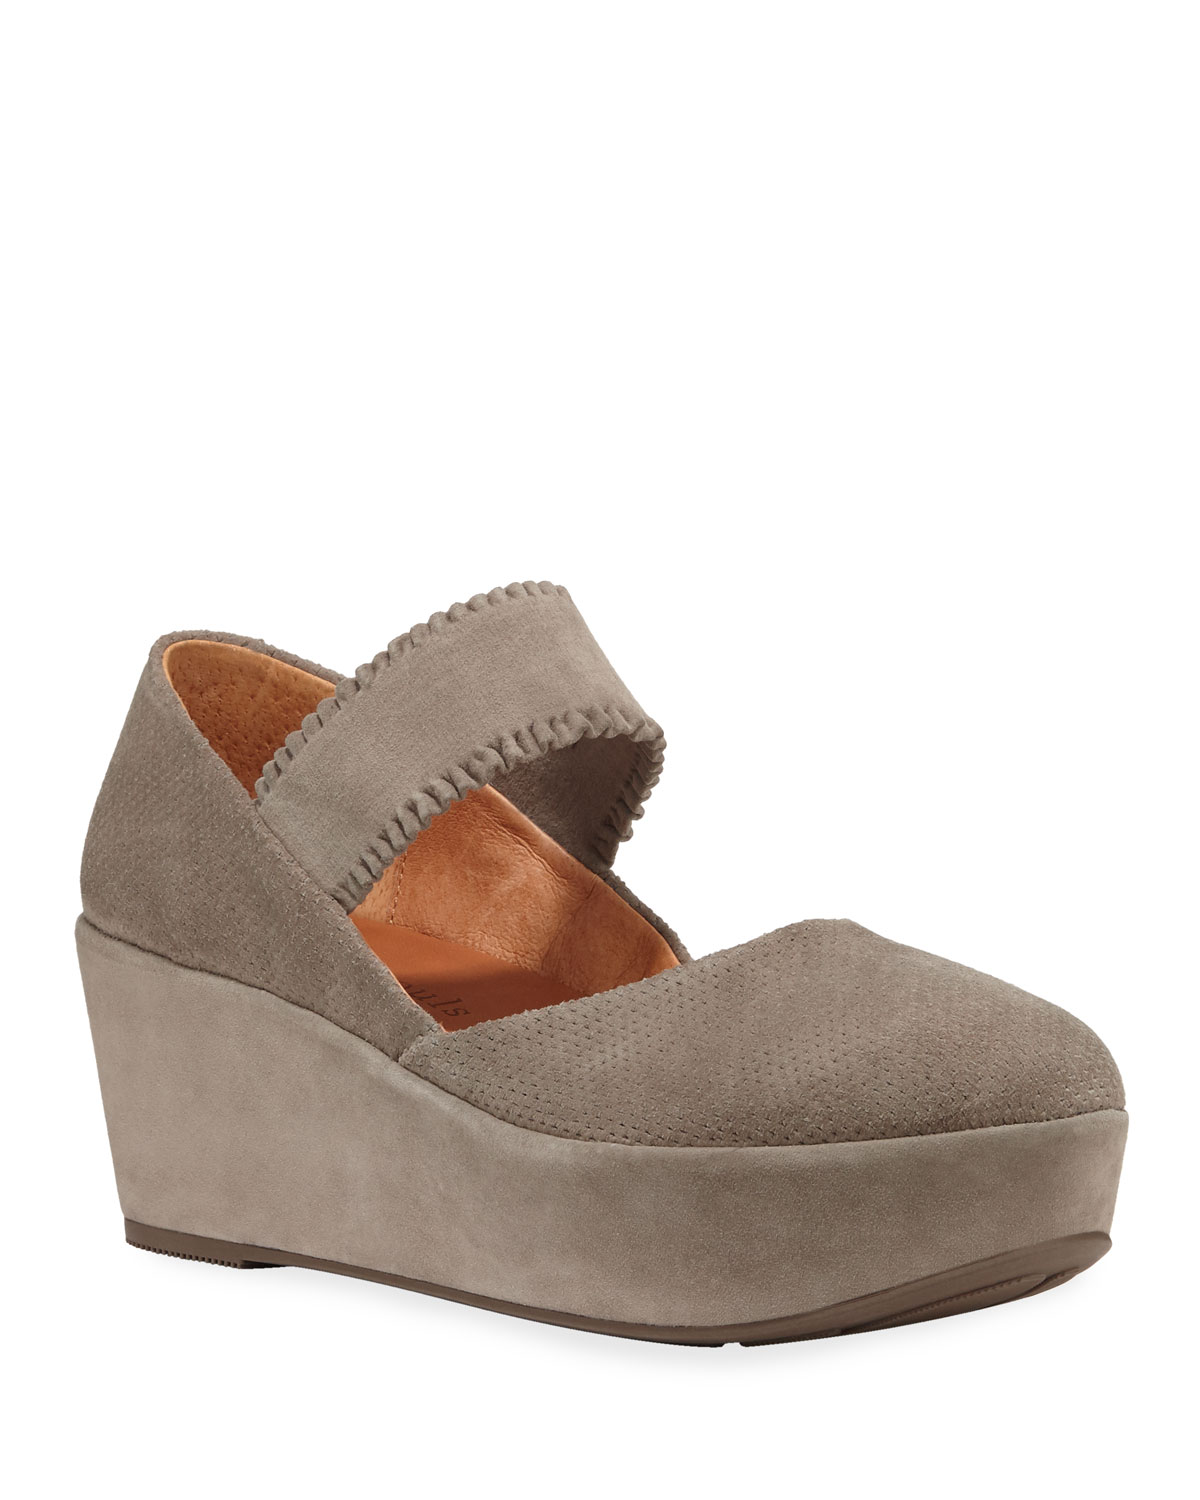 Nyssa Ruffle-Strap Suede Wedge Sandals